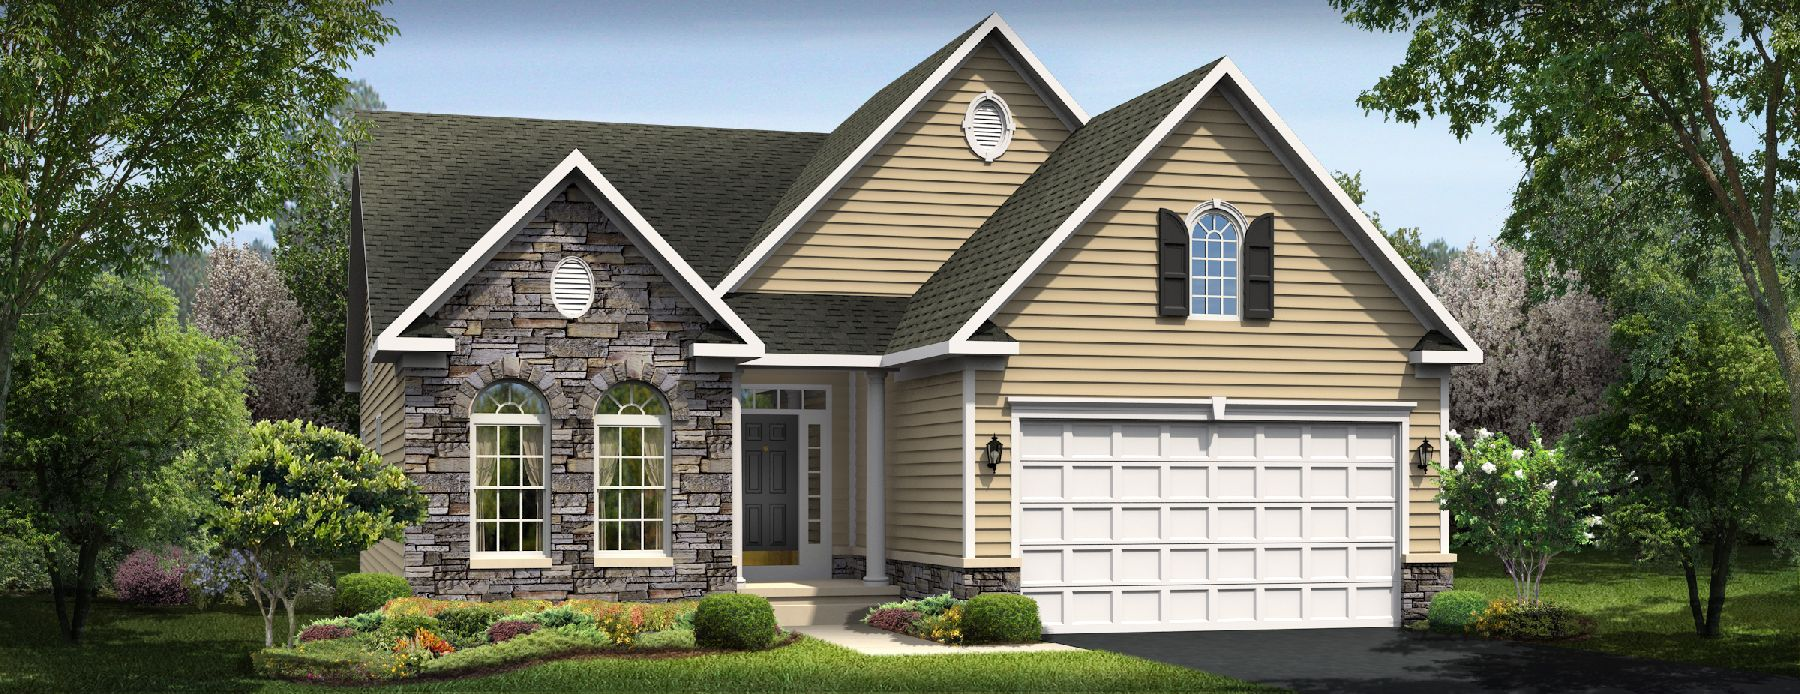 Ryan Homes Floor Plans Ohio: New Construction Single-Family Homes For Sale -Brentwood